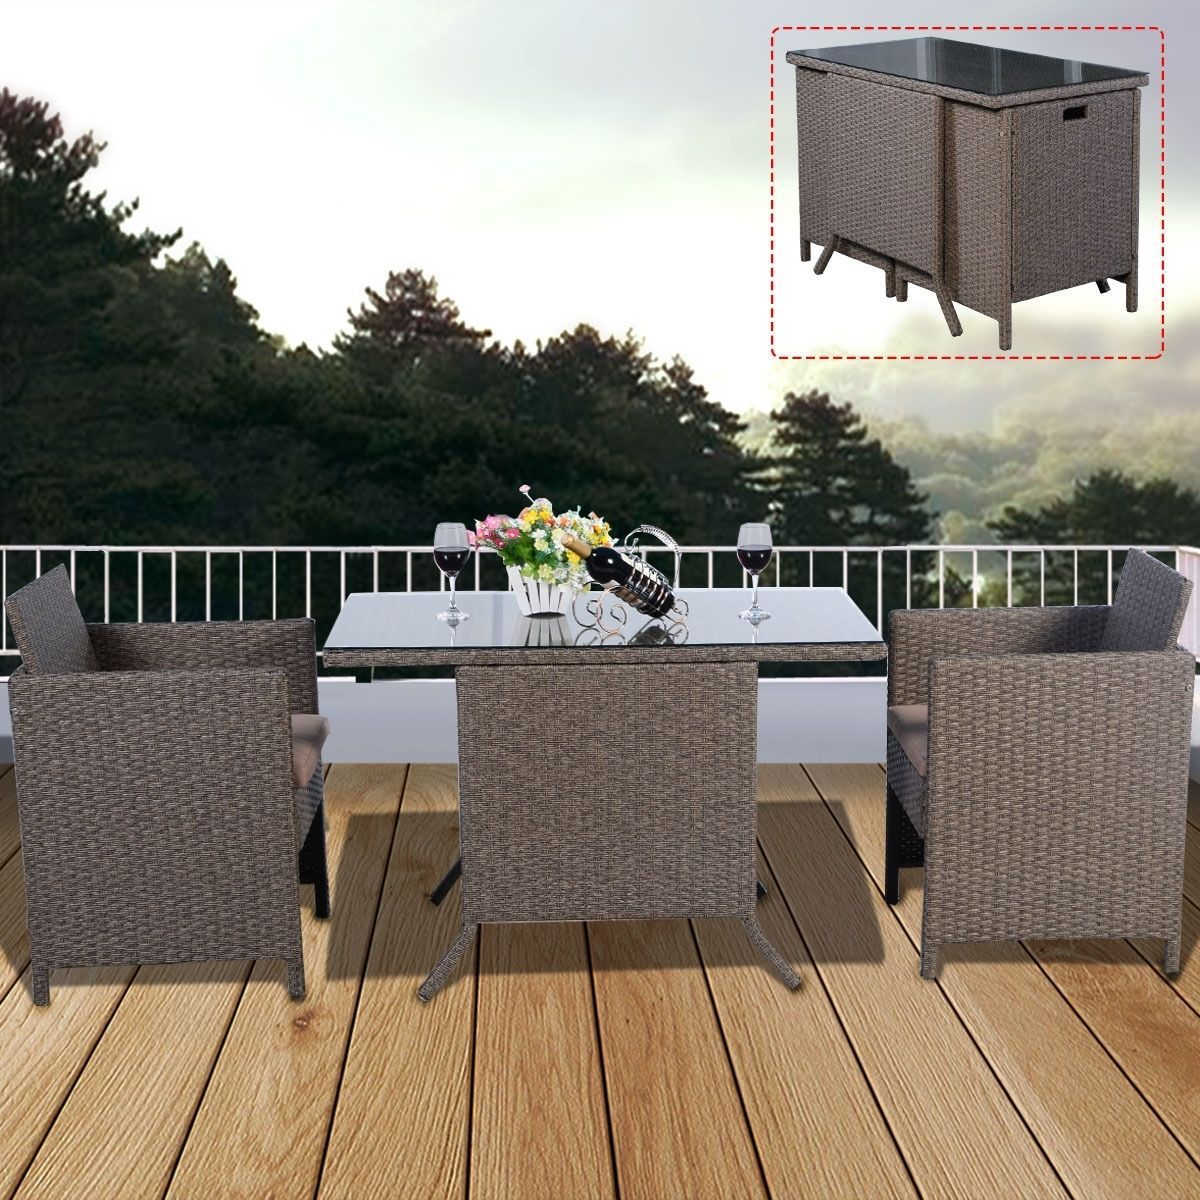 Garden Rattan Set 3pcs Table Chairs Cushioned Outdoor Patio Small Dining Set  image 3